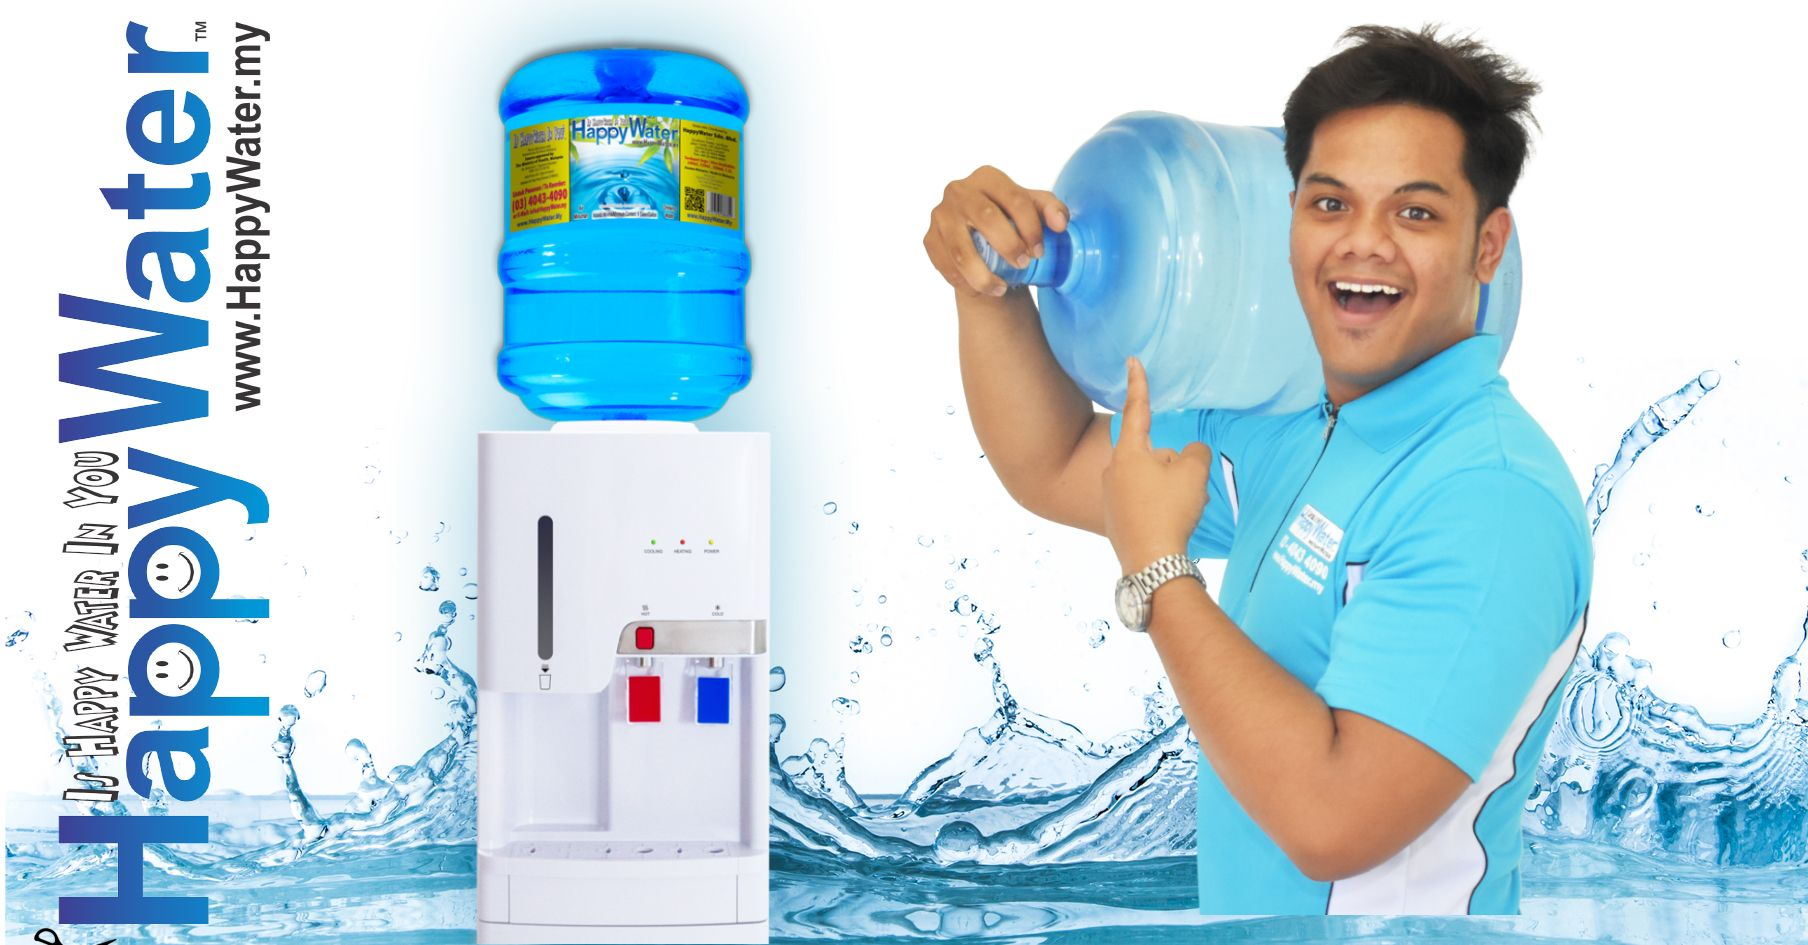 Kuala Lumpur Water Supply Water Delivery Water Delivery Service Bottled Water Delivery